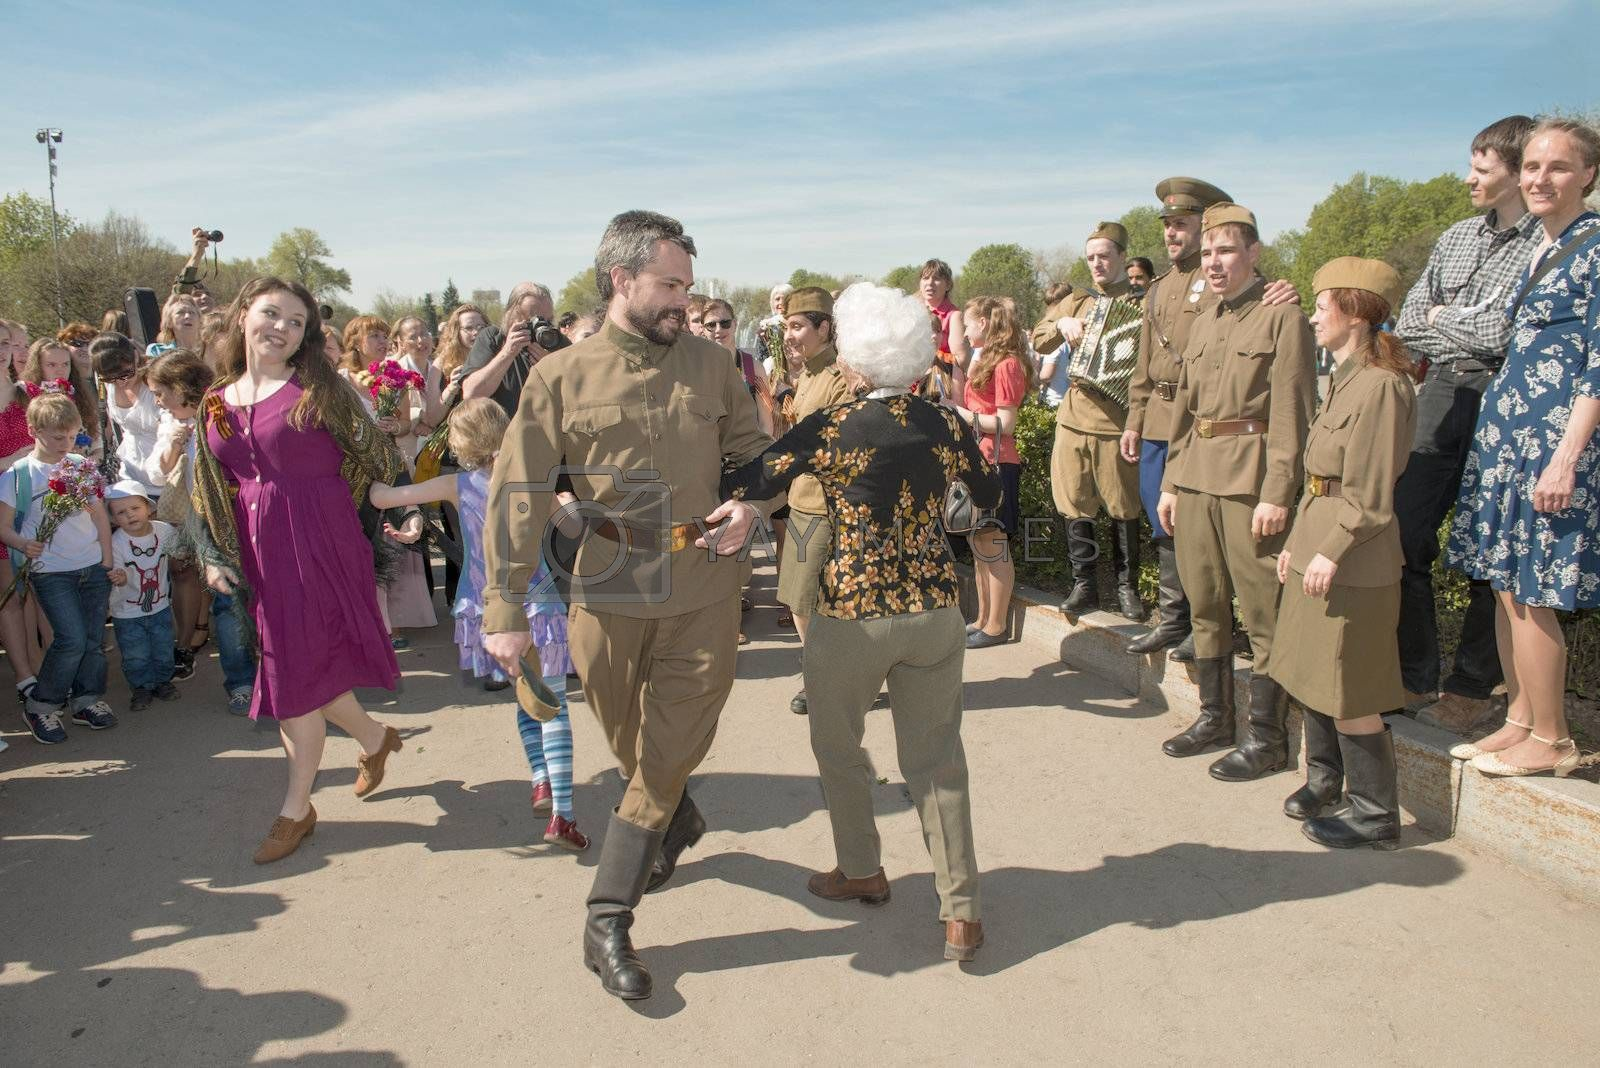 Moscow, Russia - May 9, 2013: Group of young peoples in uniform decorated dancing during with veterans festivities devoted to 68th anniversary of Victory Day.